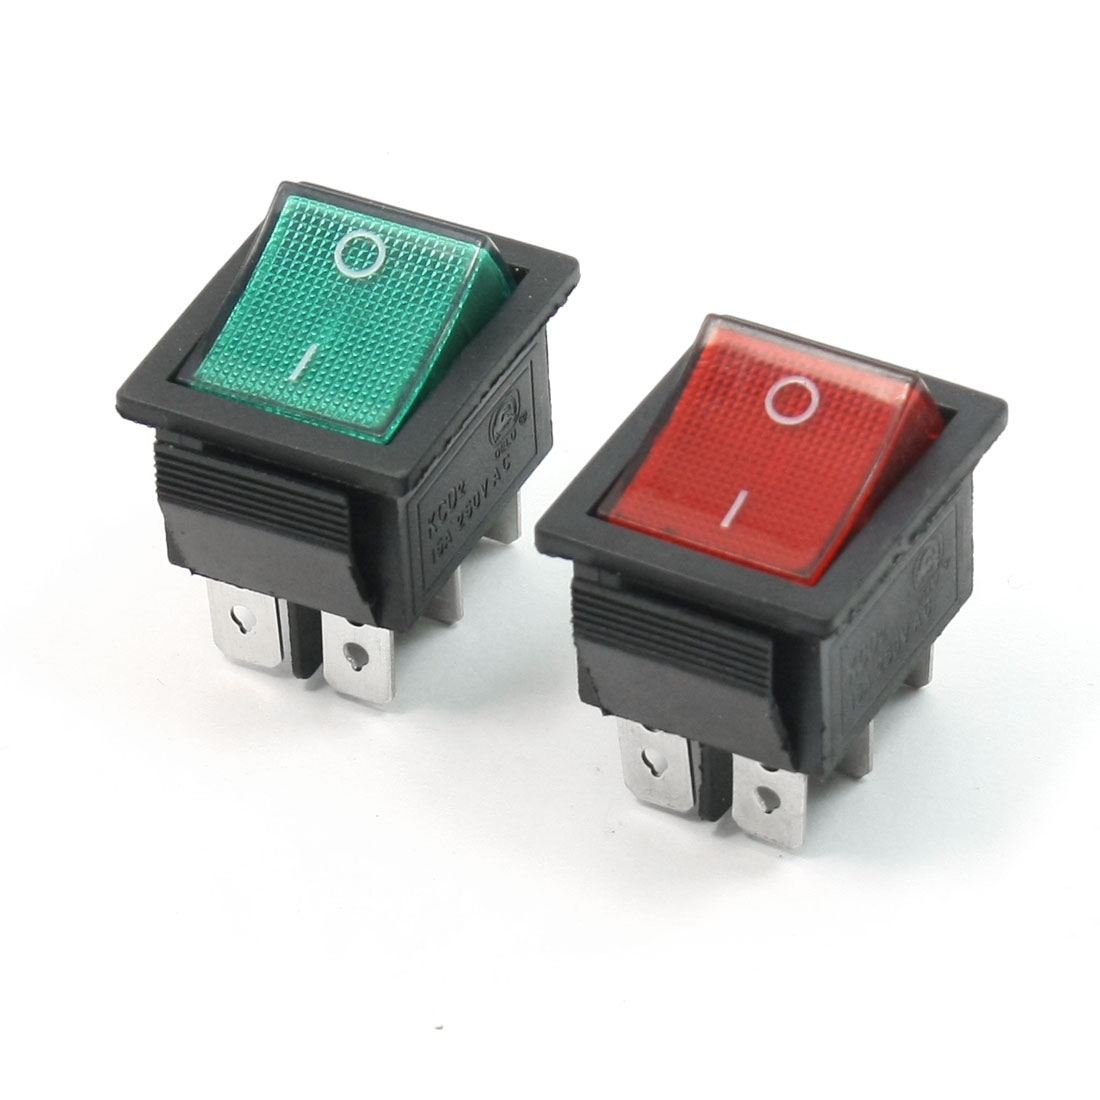 2 PCS On-Off DPDT 6 Pin Terminals Green+Red Pilot Lamp Rocker Switch AC250V 15A